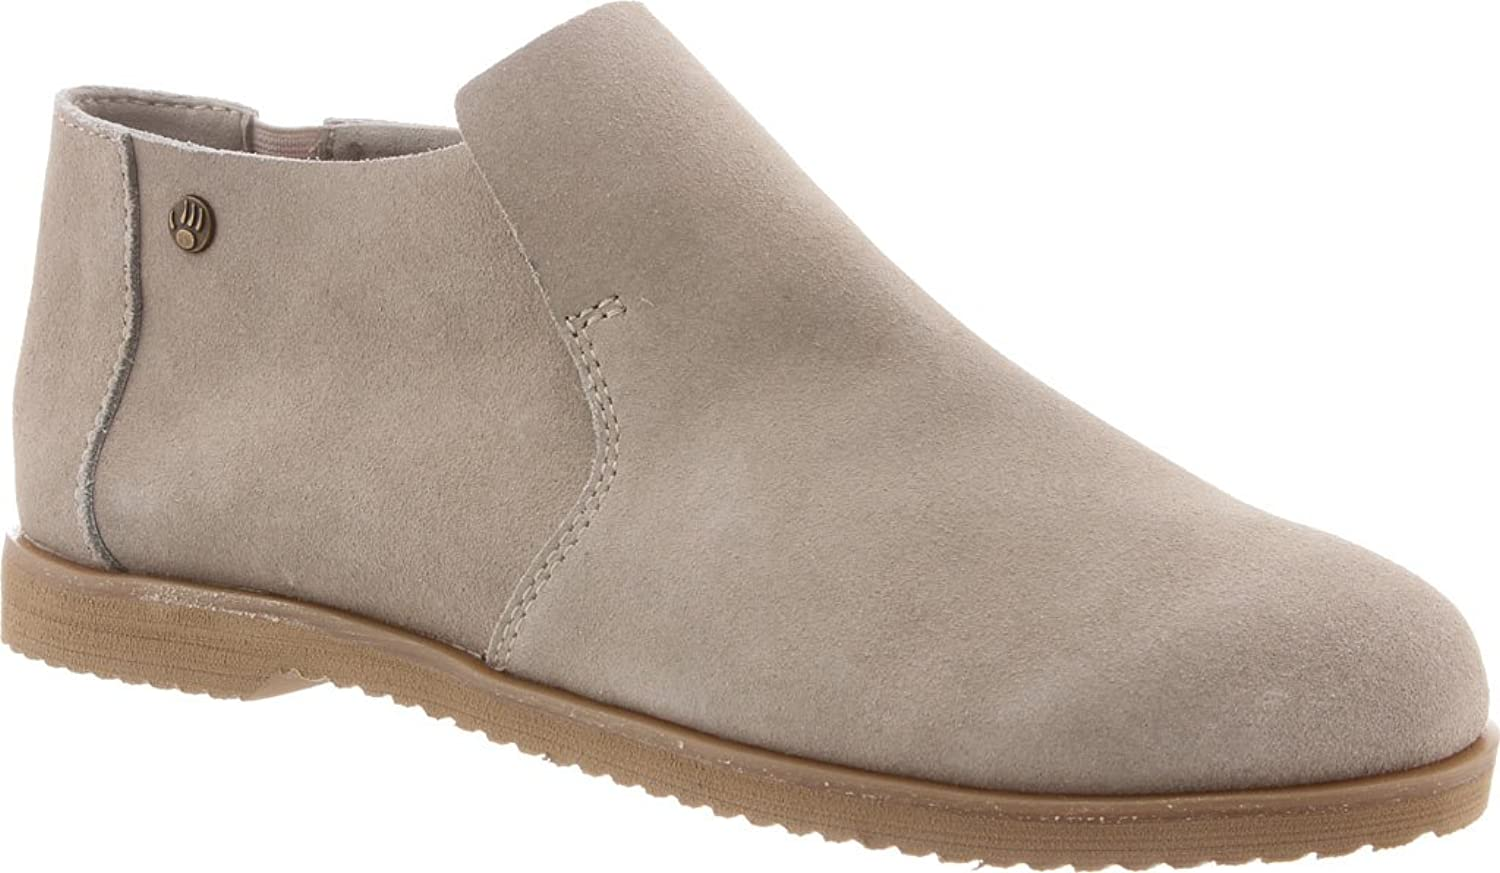 Bearpaw Women's Charlize Slip-On Ankle Boot